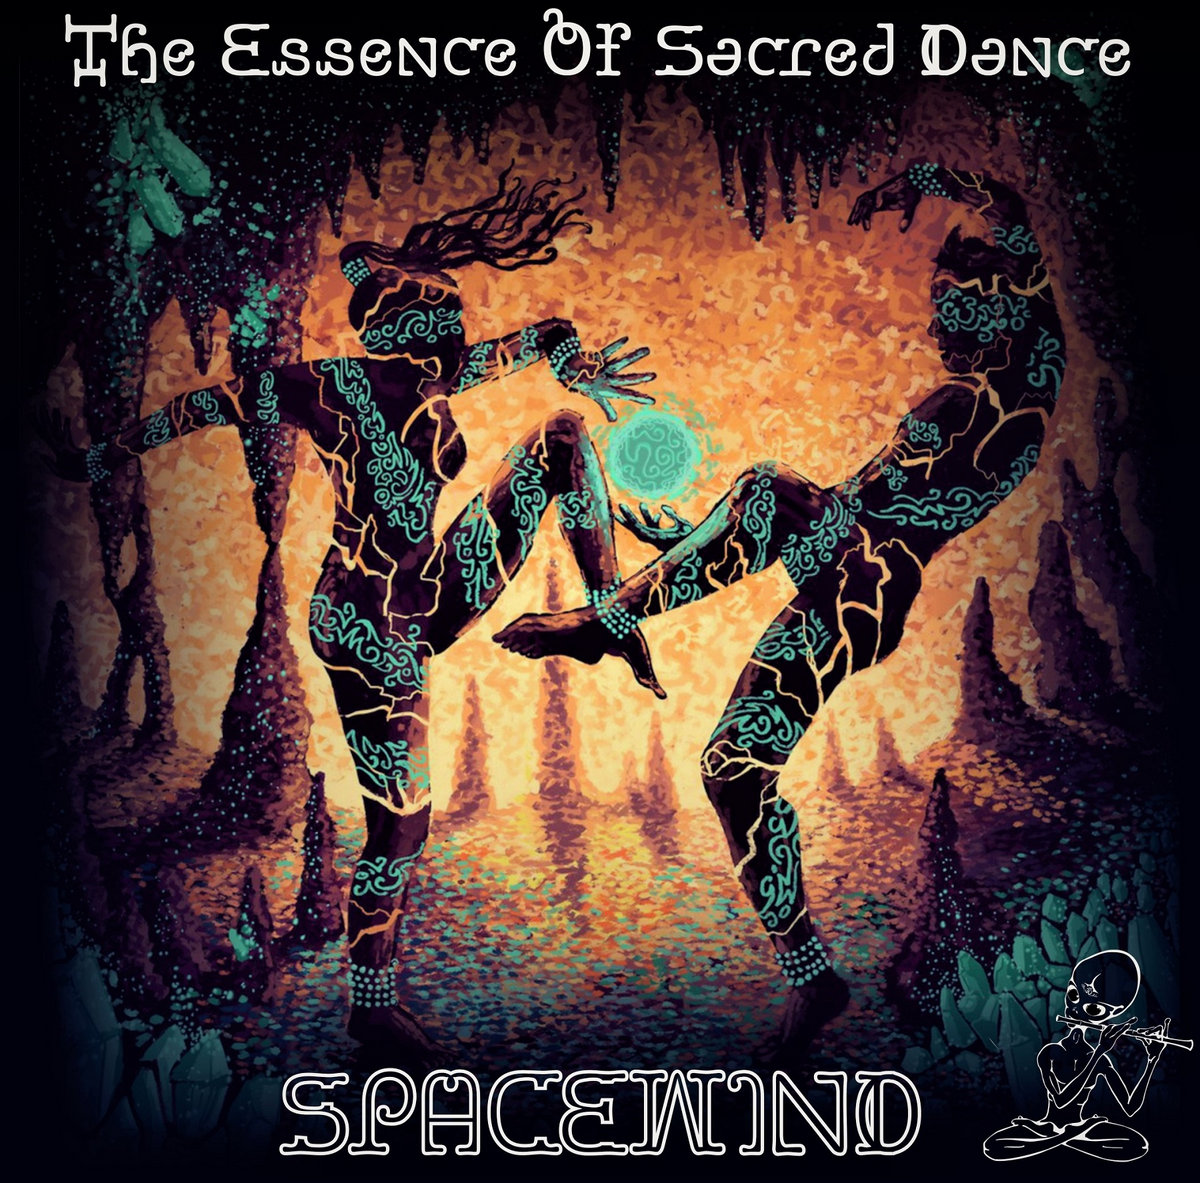 Spacewind-The Essence Of The Sacred Dance | Spacewind